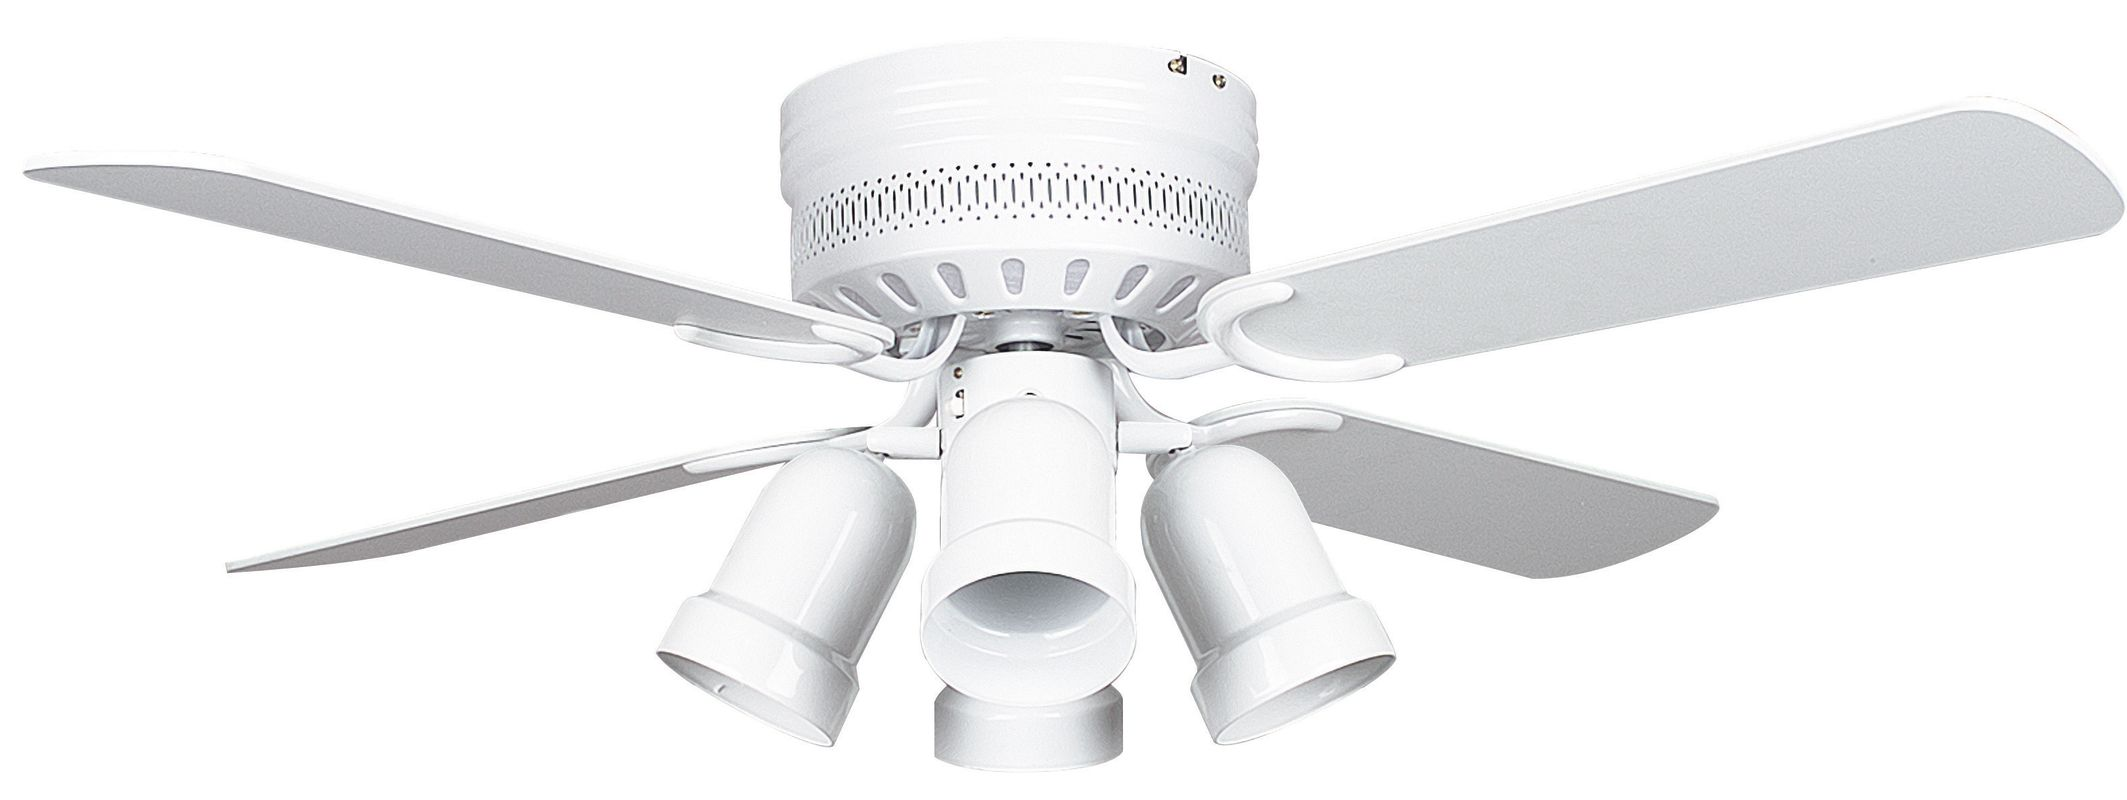 "Concord 42HUG4WH 4 Blade 42"" Ceiling Fan from the Commercial Select"